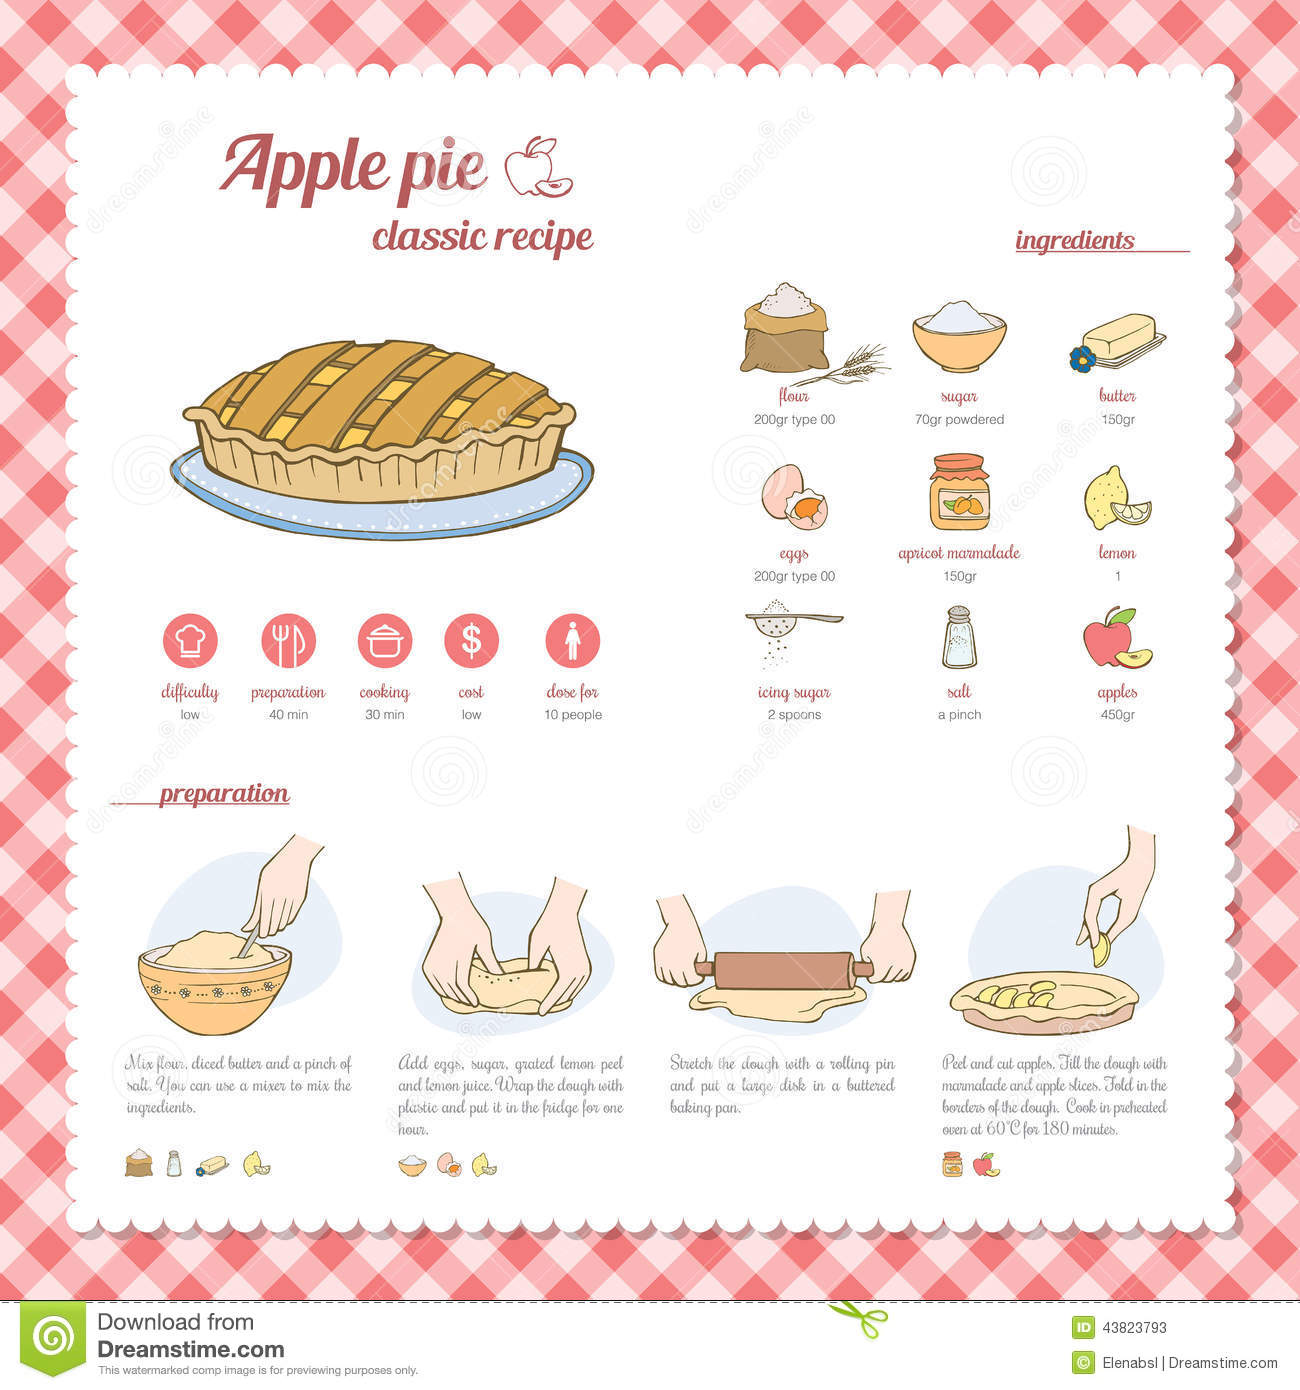 Apple pie recipe with icons, ingredients and preparation procedure.